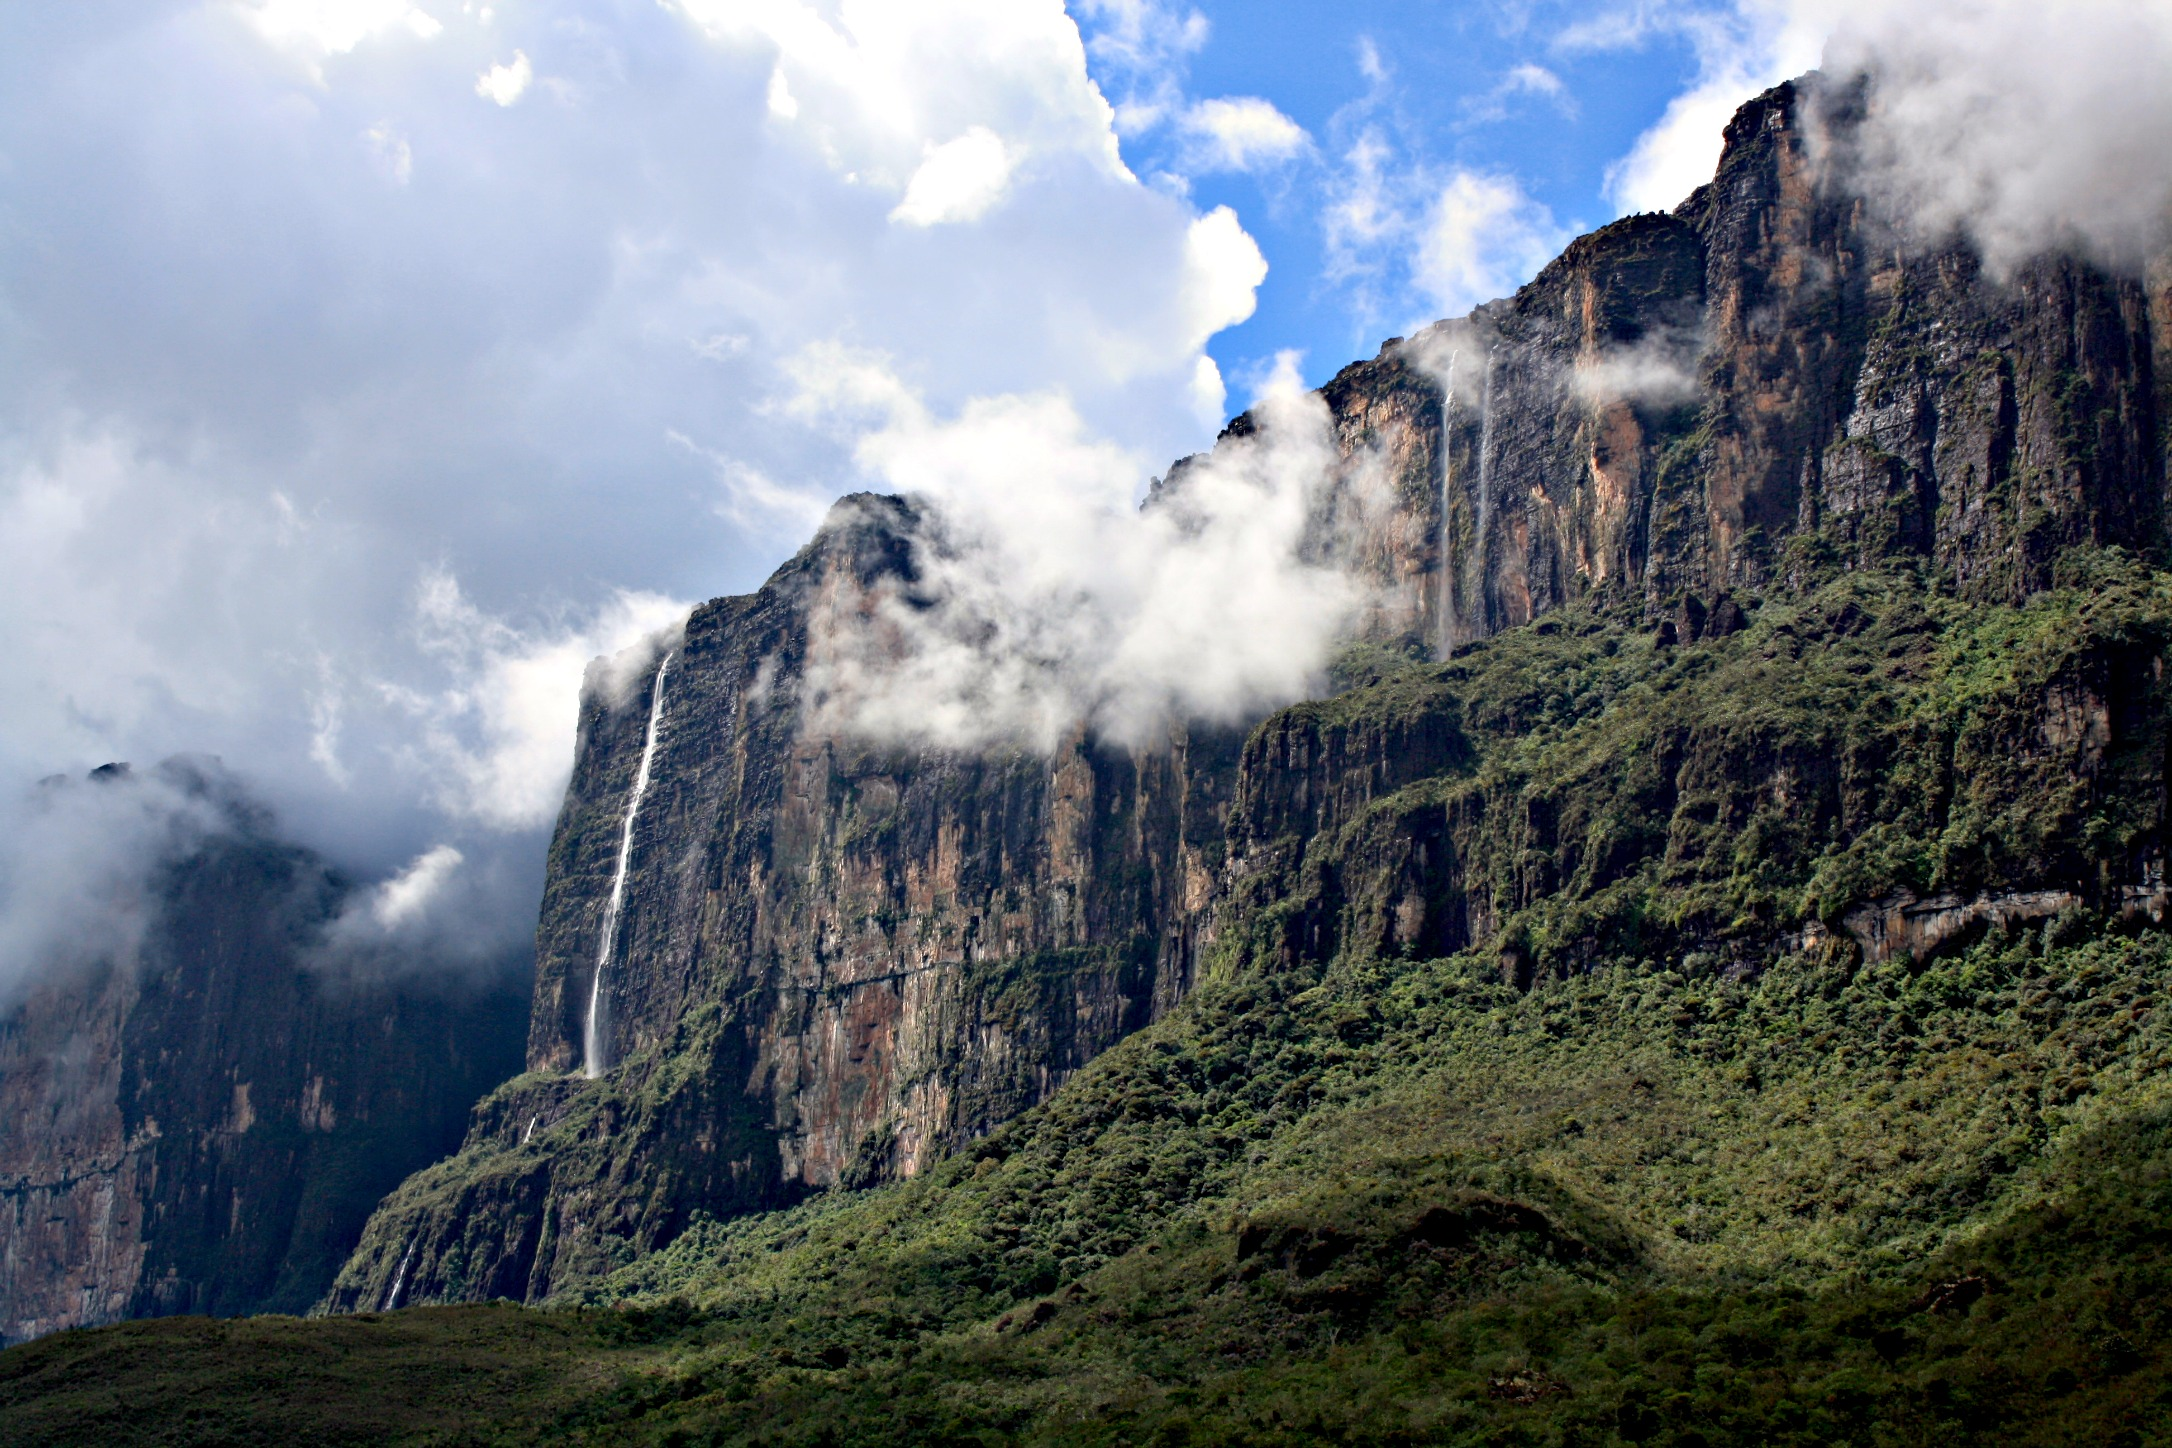 Trekking in South America: Mount Roraima, Venezuela